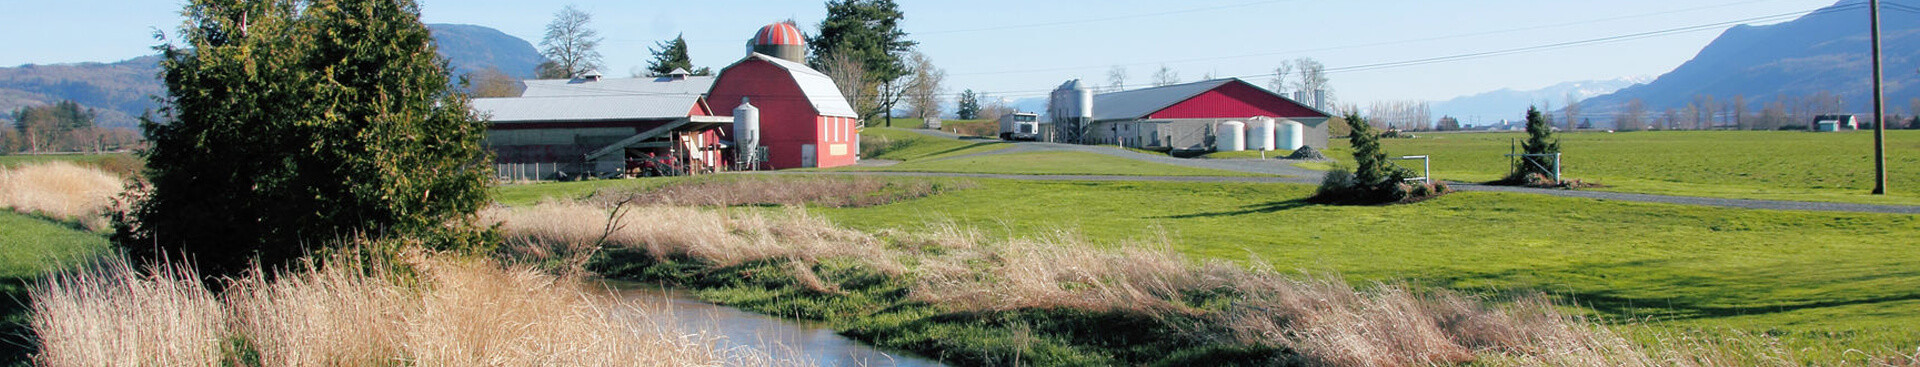 Red barn and farmhouse located beside a stream